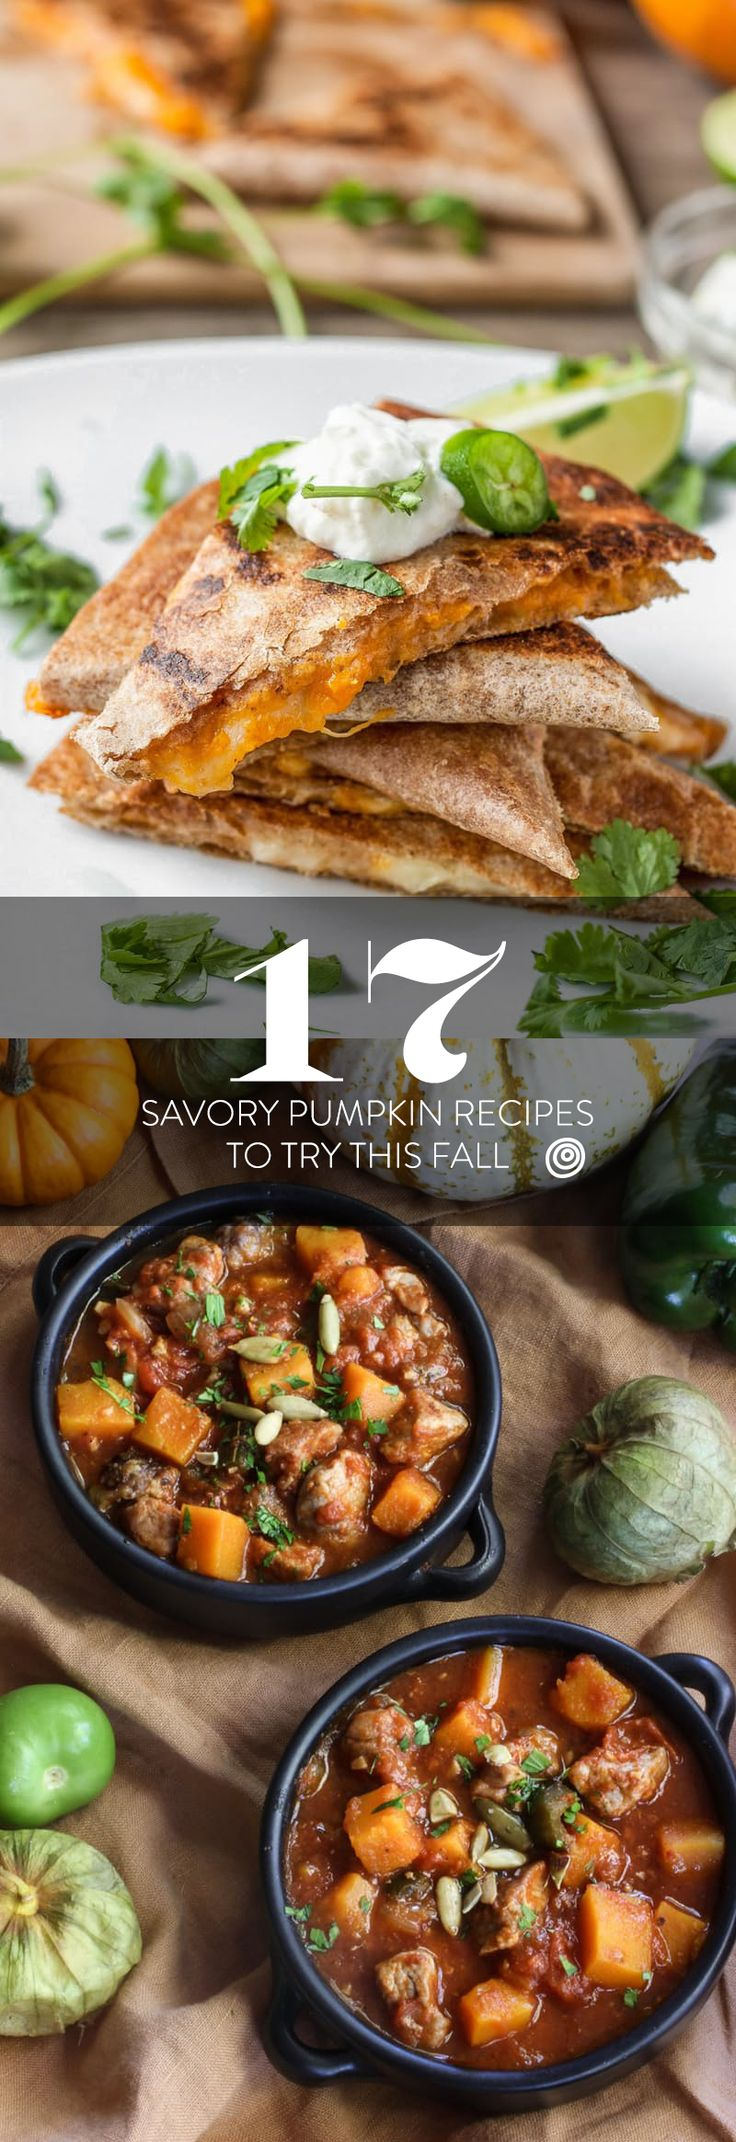 17 Savory Pumpkin Recipes to Try This Fall. Lots of unique pumpkin recipe ideas that go WAY beyond pumpkin pie! Comfort food and cozy food of all kinds from quesadillas to chili, stew, and beyond.